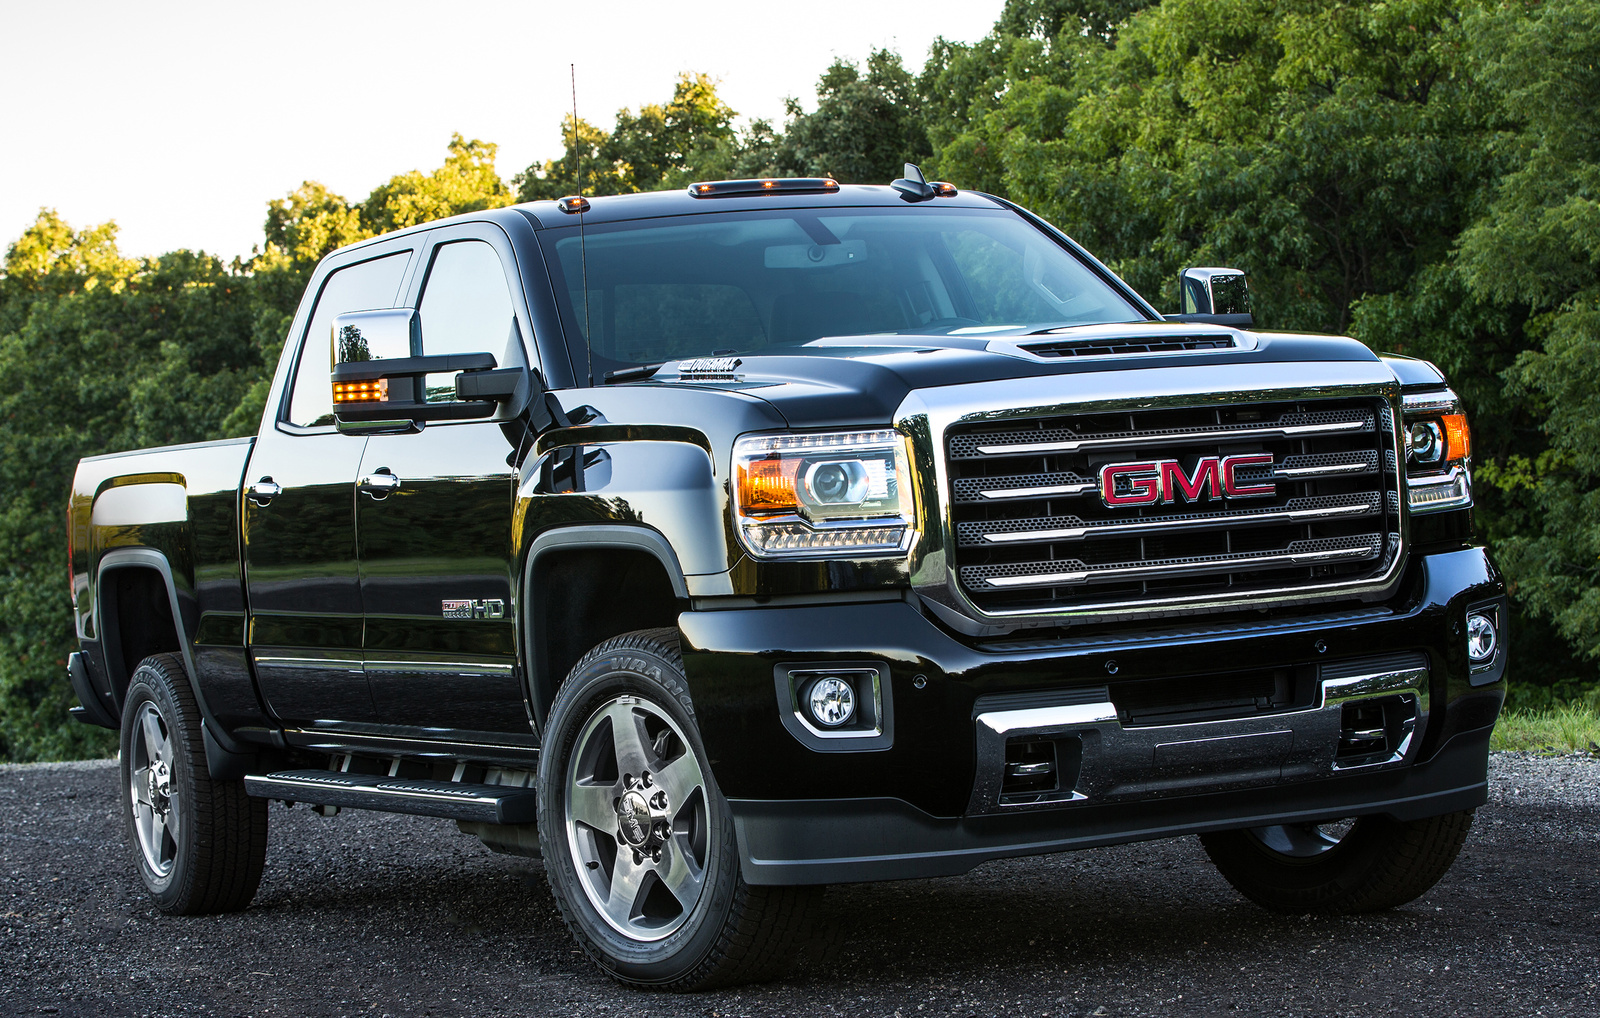 New 2017 2018 gmc sierra 2500hd for sale near atlanta